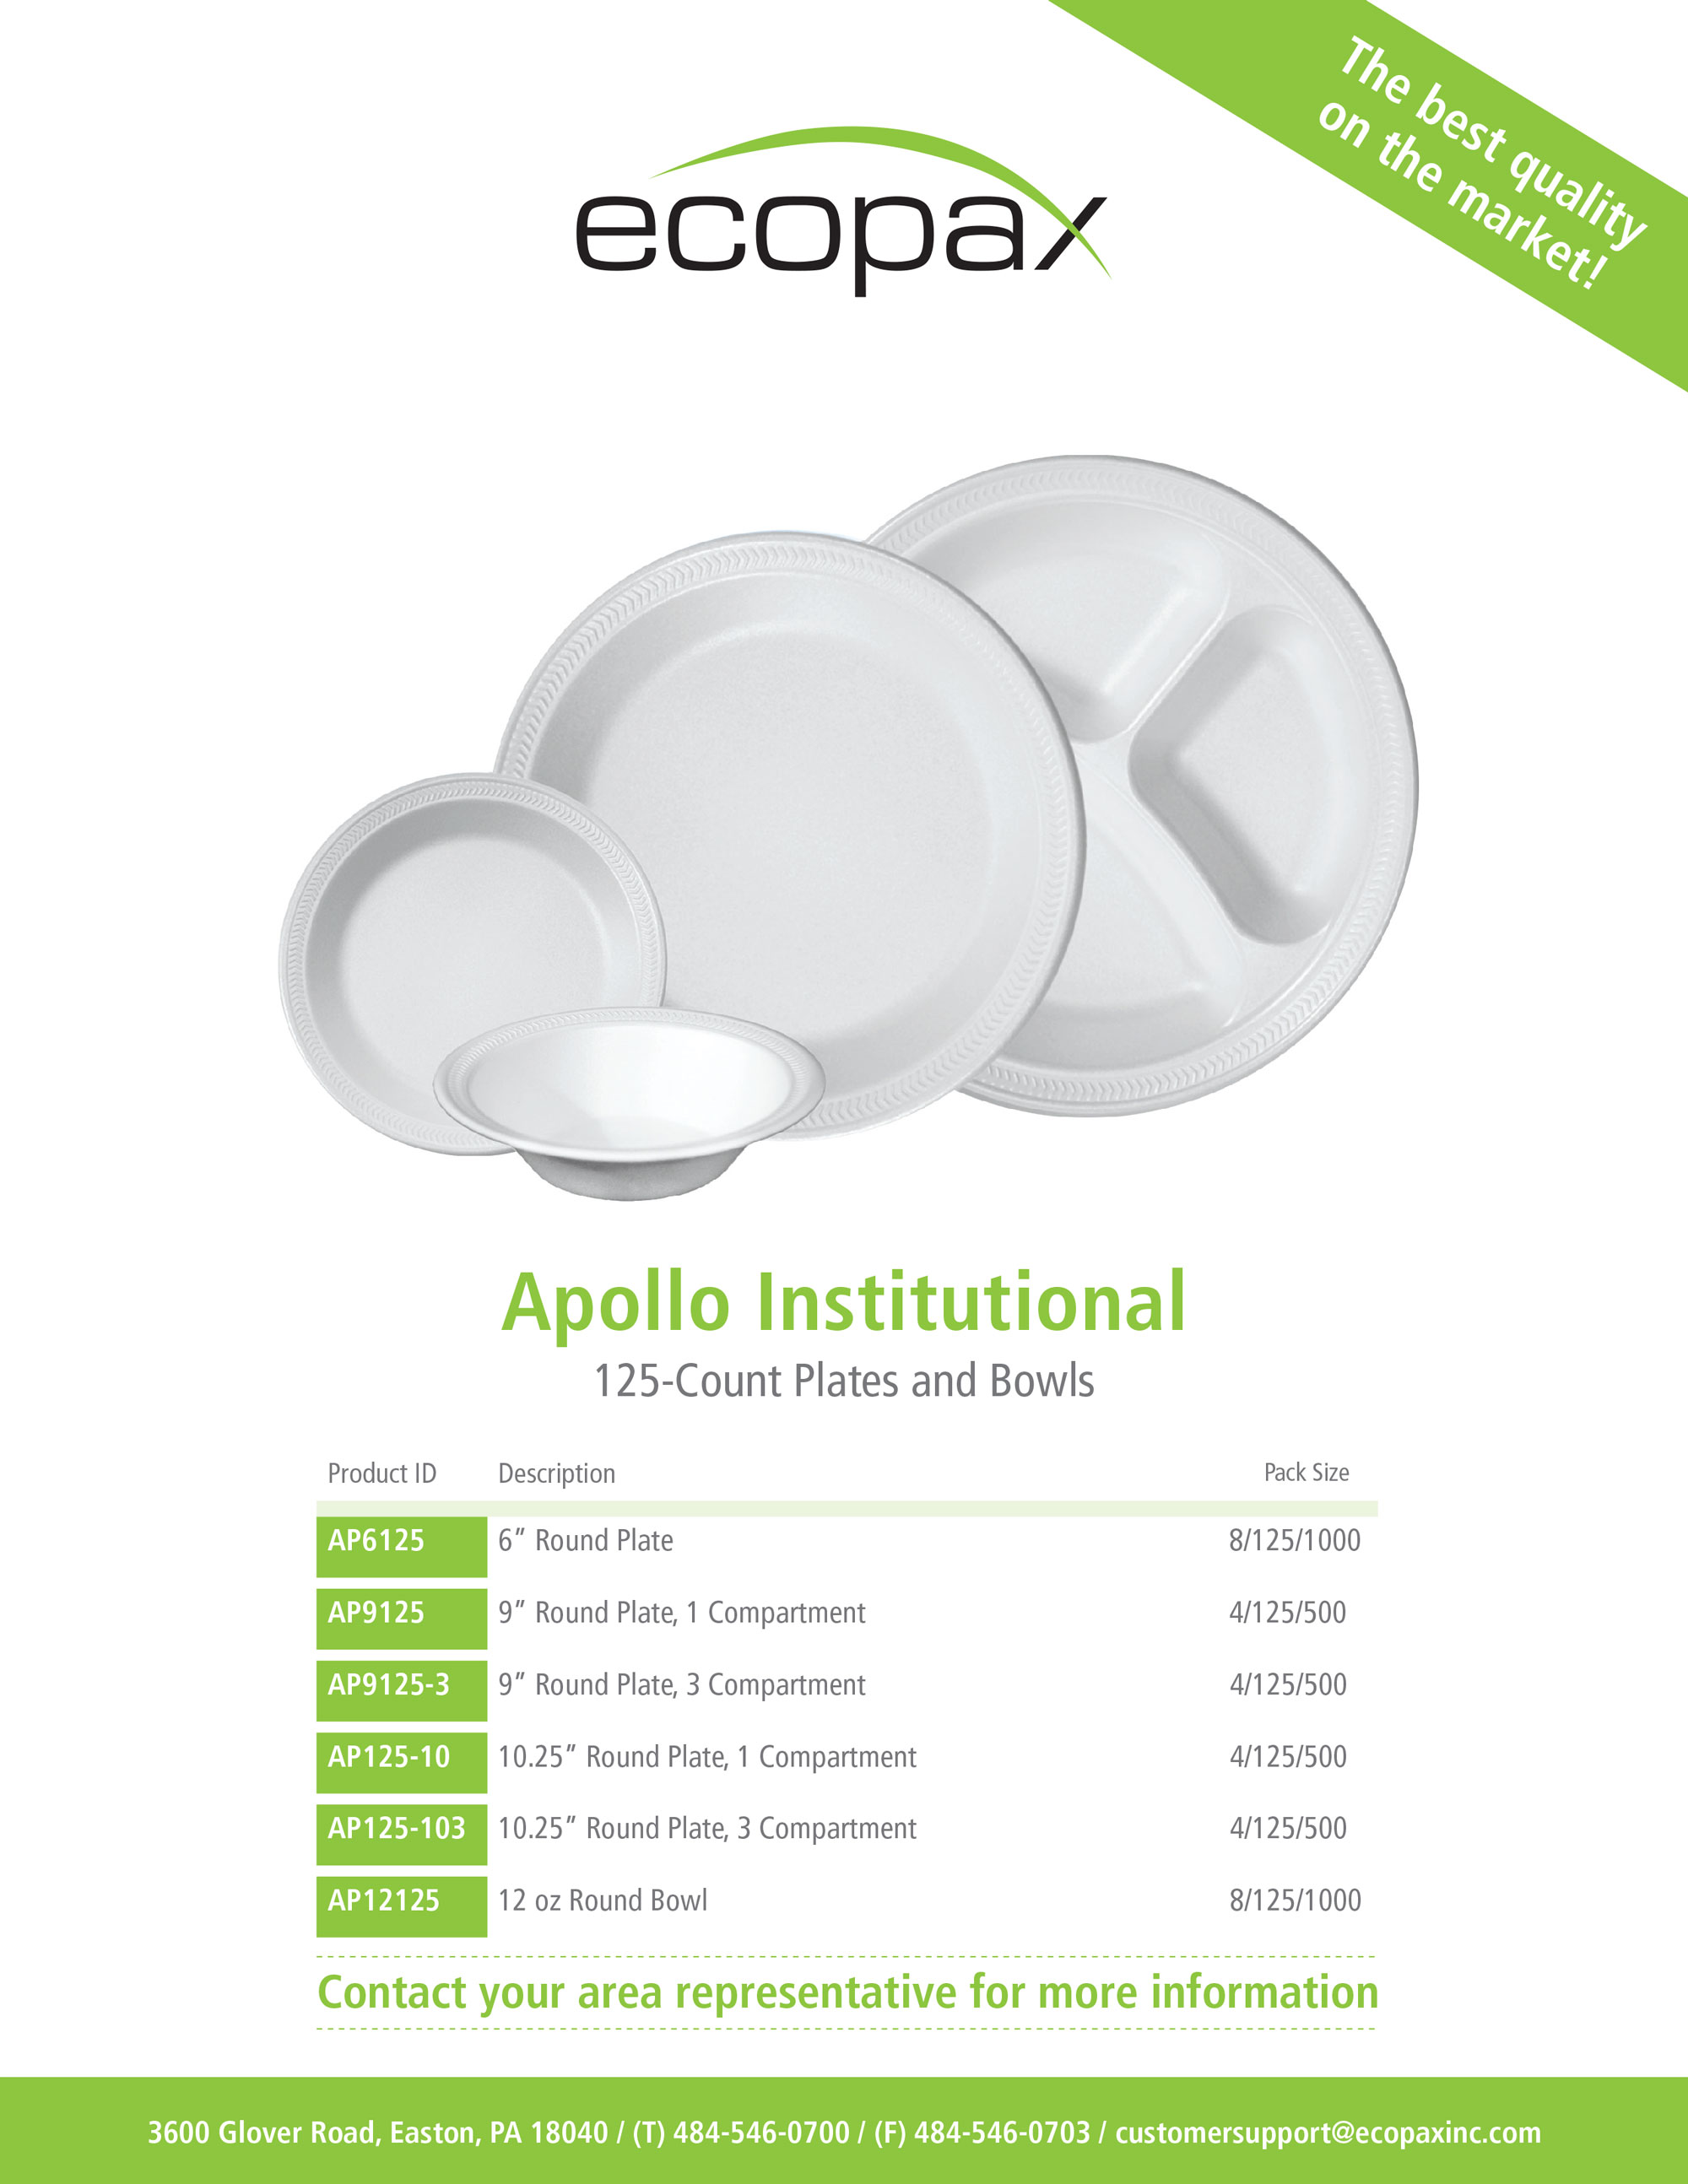 Ecopax Apollo foam plates and bowl sale sheet cover with product specifications and details